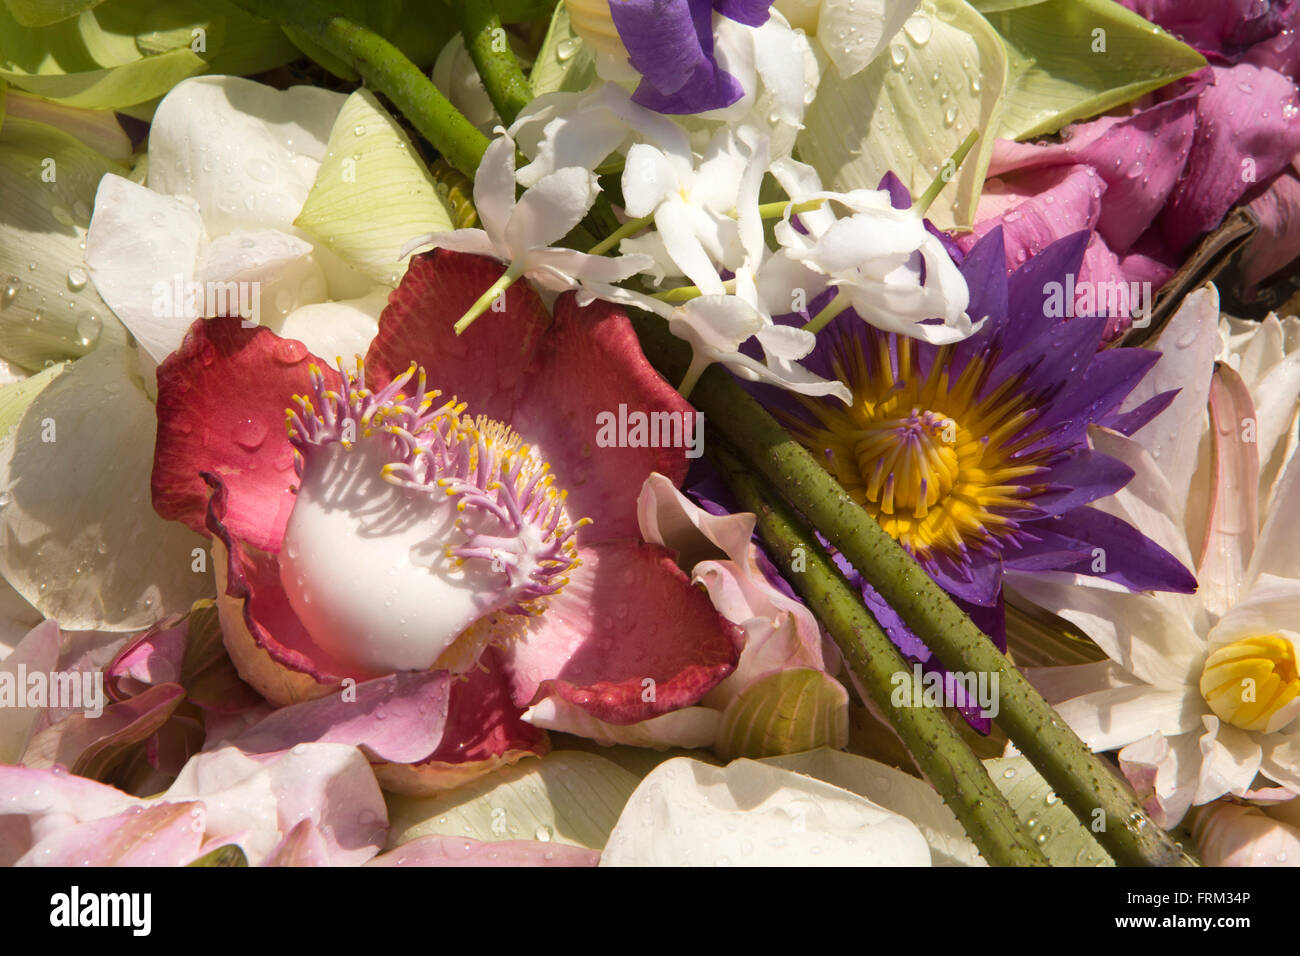 Lotus Flowers Sri Lanka Stock Photos & Lotus Flowers Sri Lanka Stock ...